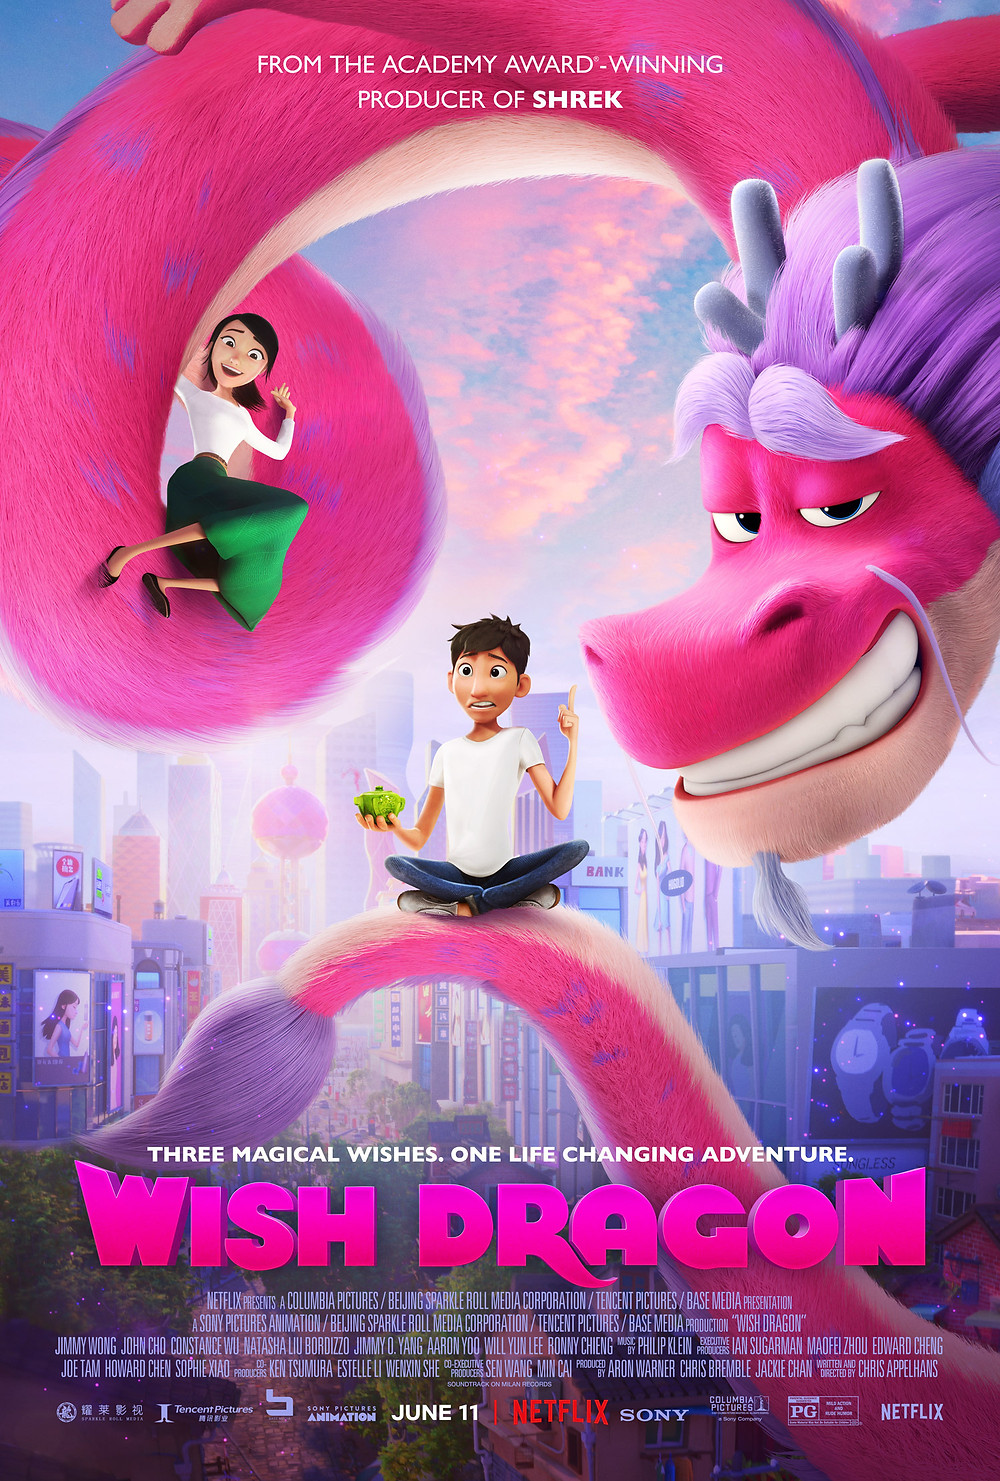 Promotional poster for a movie on Netflix right now called 'Wish Dragon'